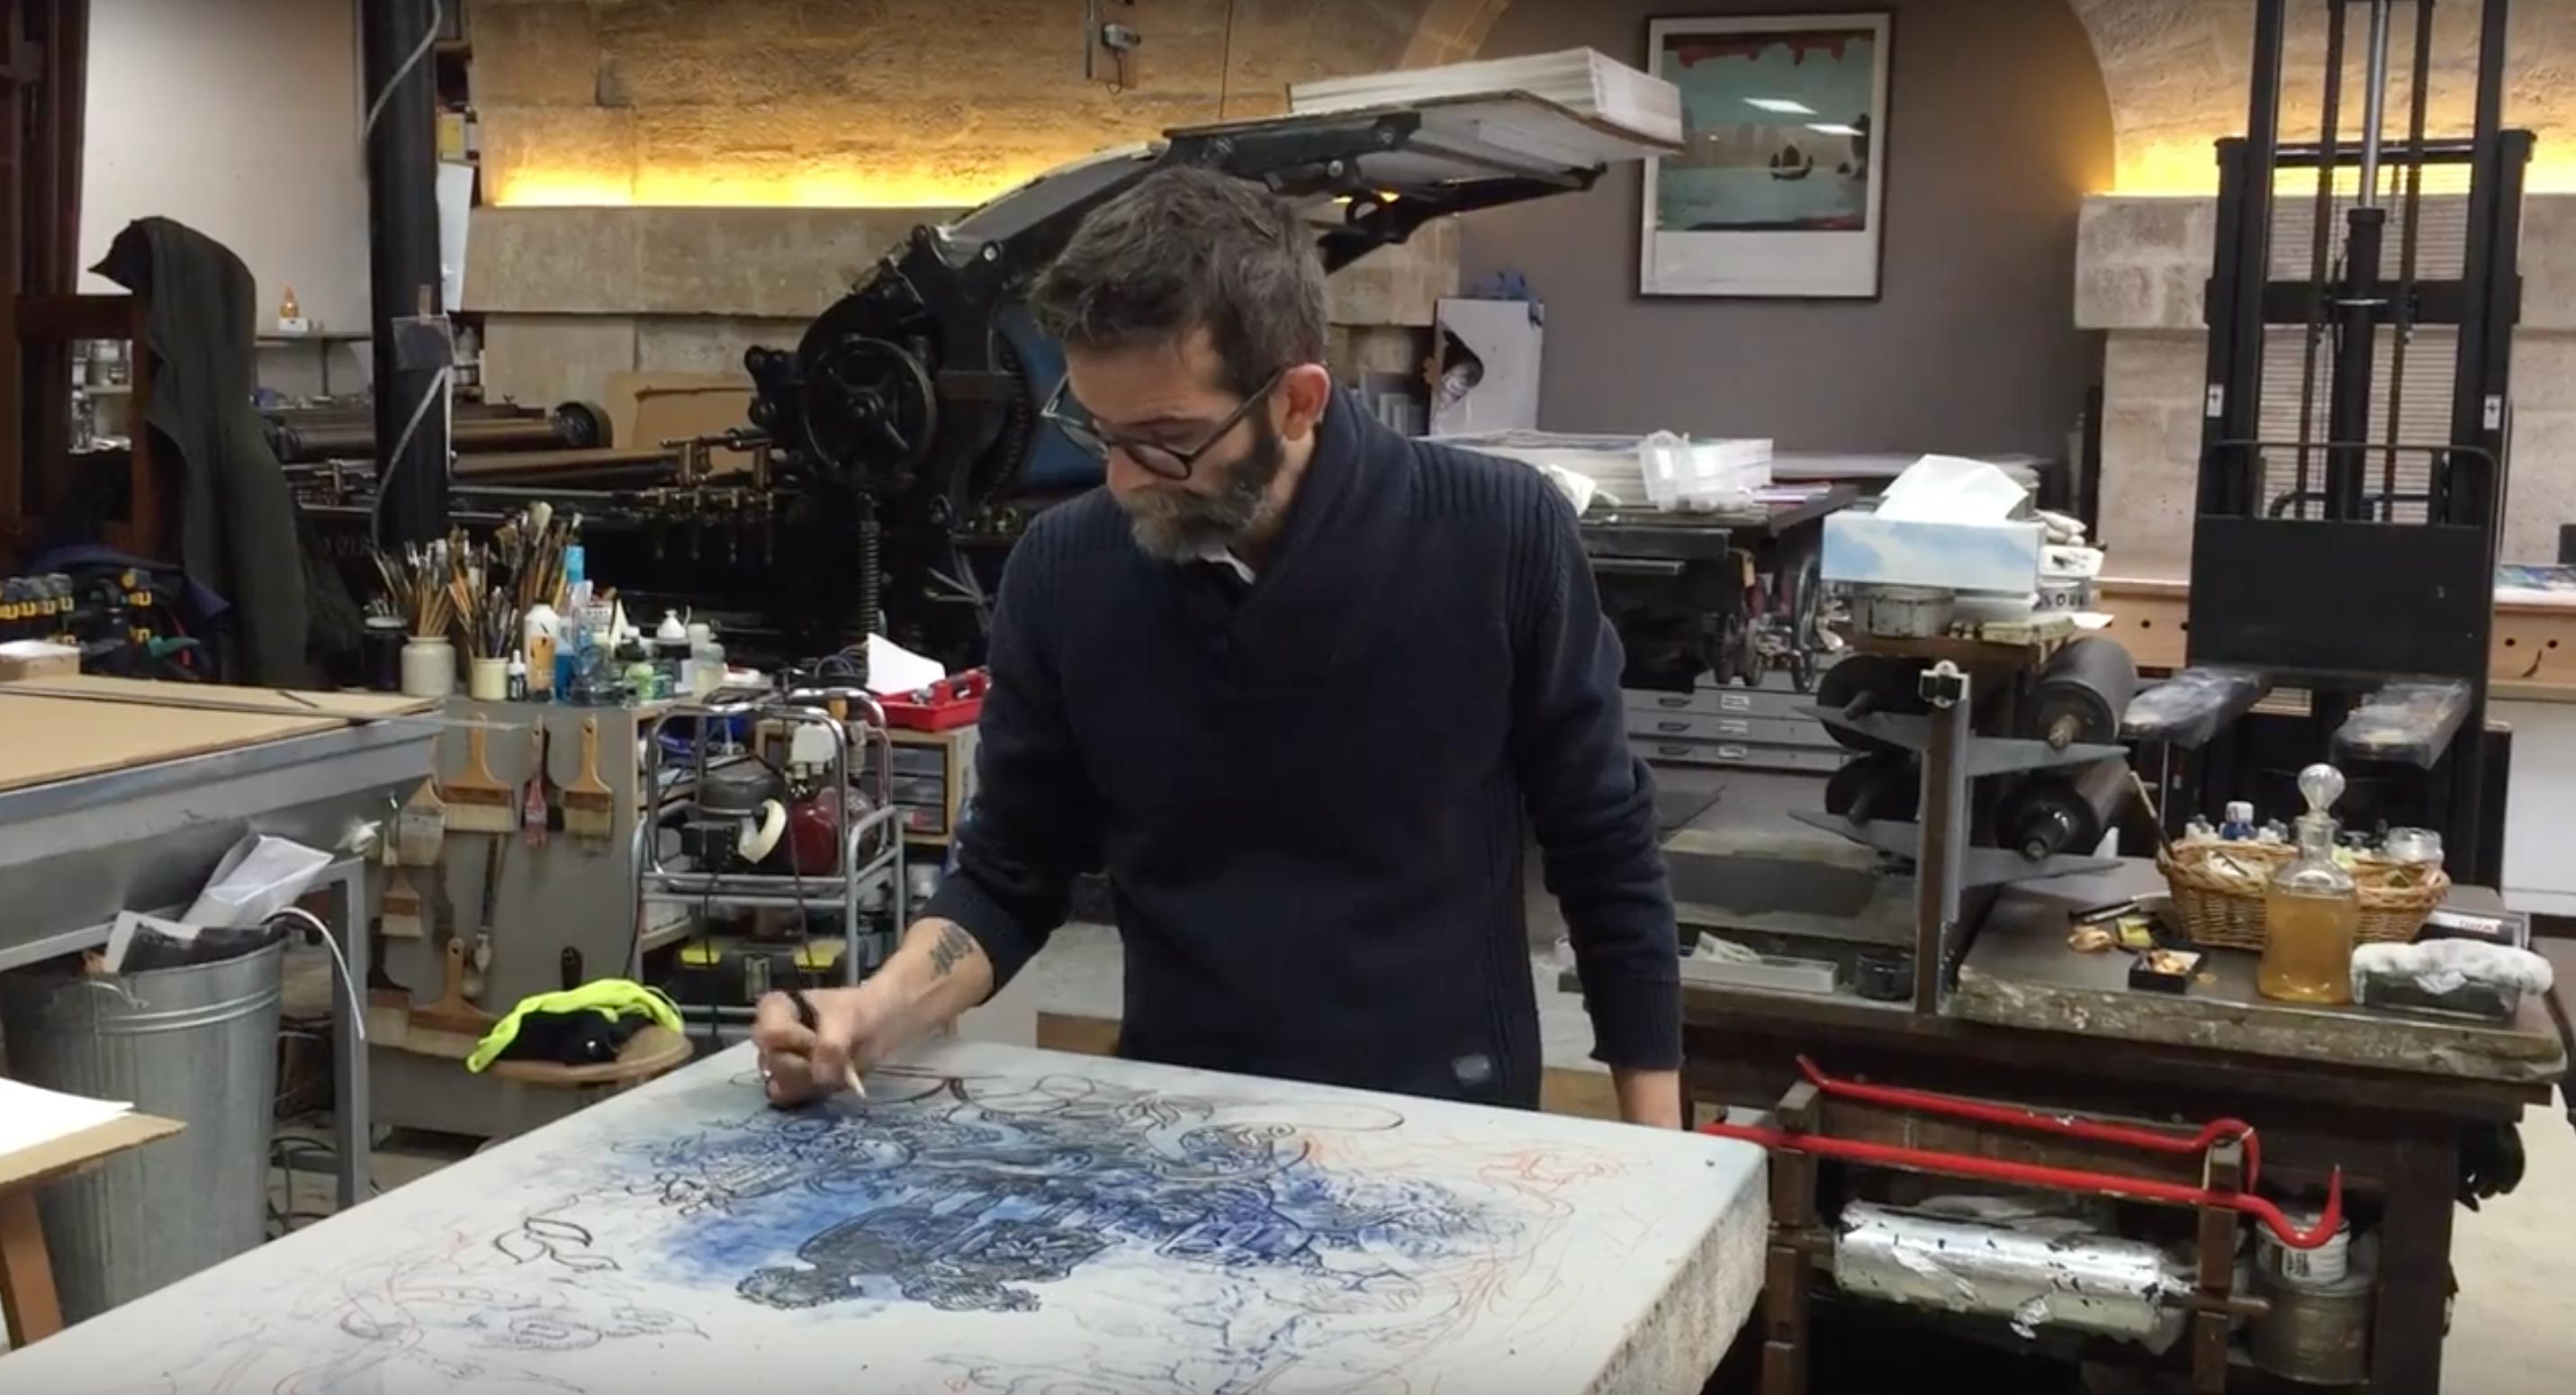 Video - Winshluss travaillant sur le dessin de la lithographie Over The Rainbow